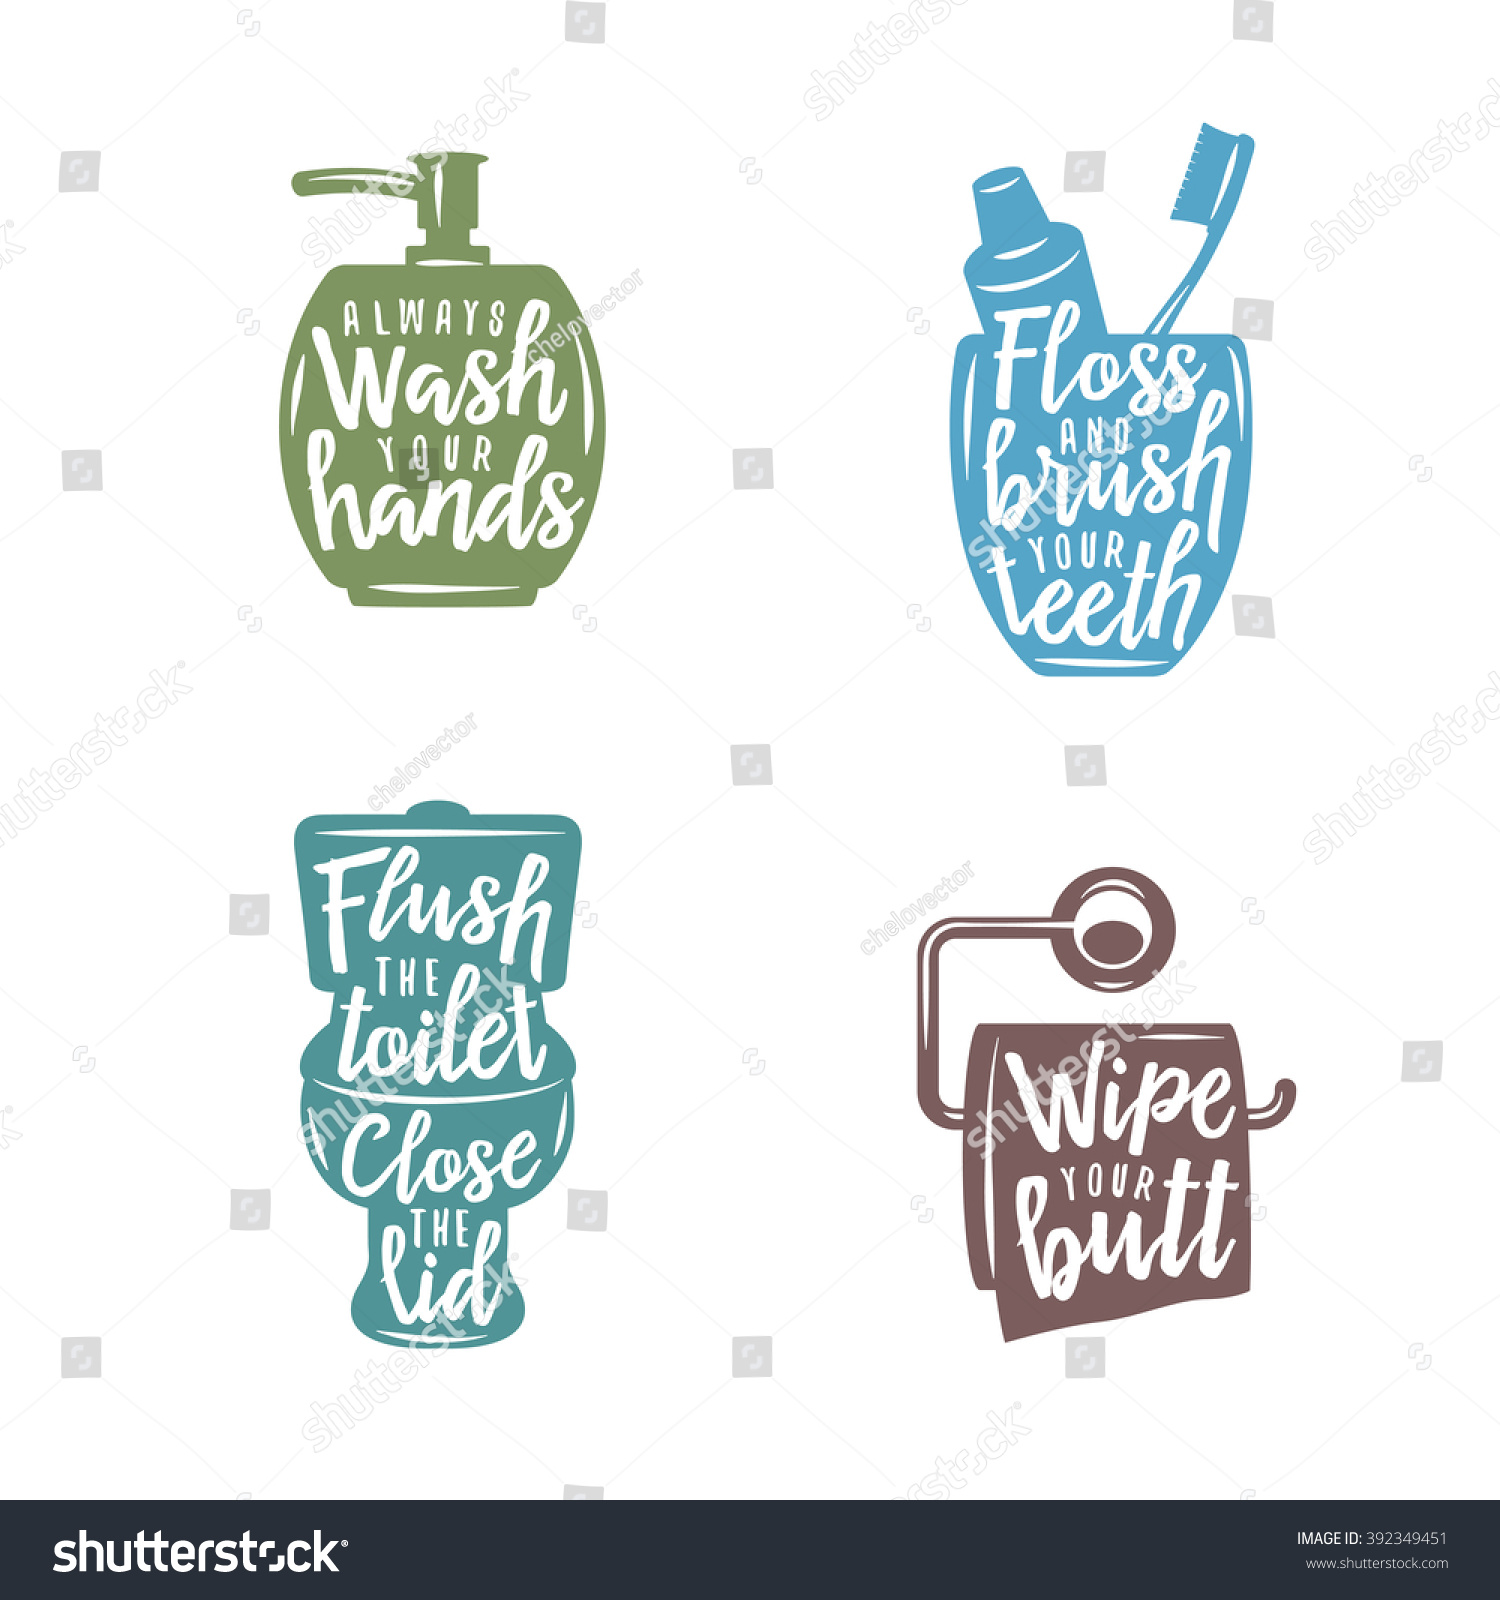 Bathroom related vintage posters quotes always stock for Bathroom quotes svg